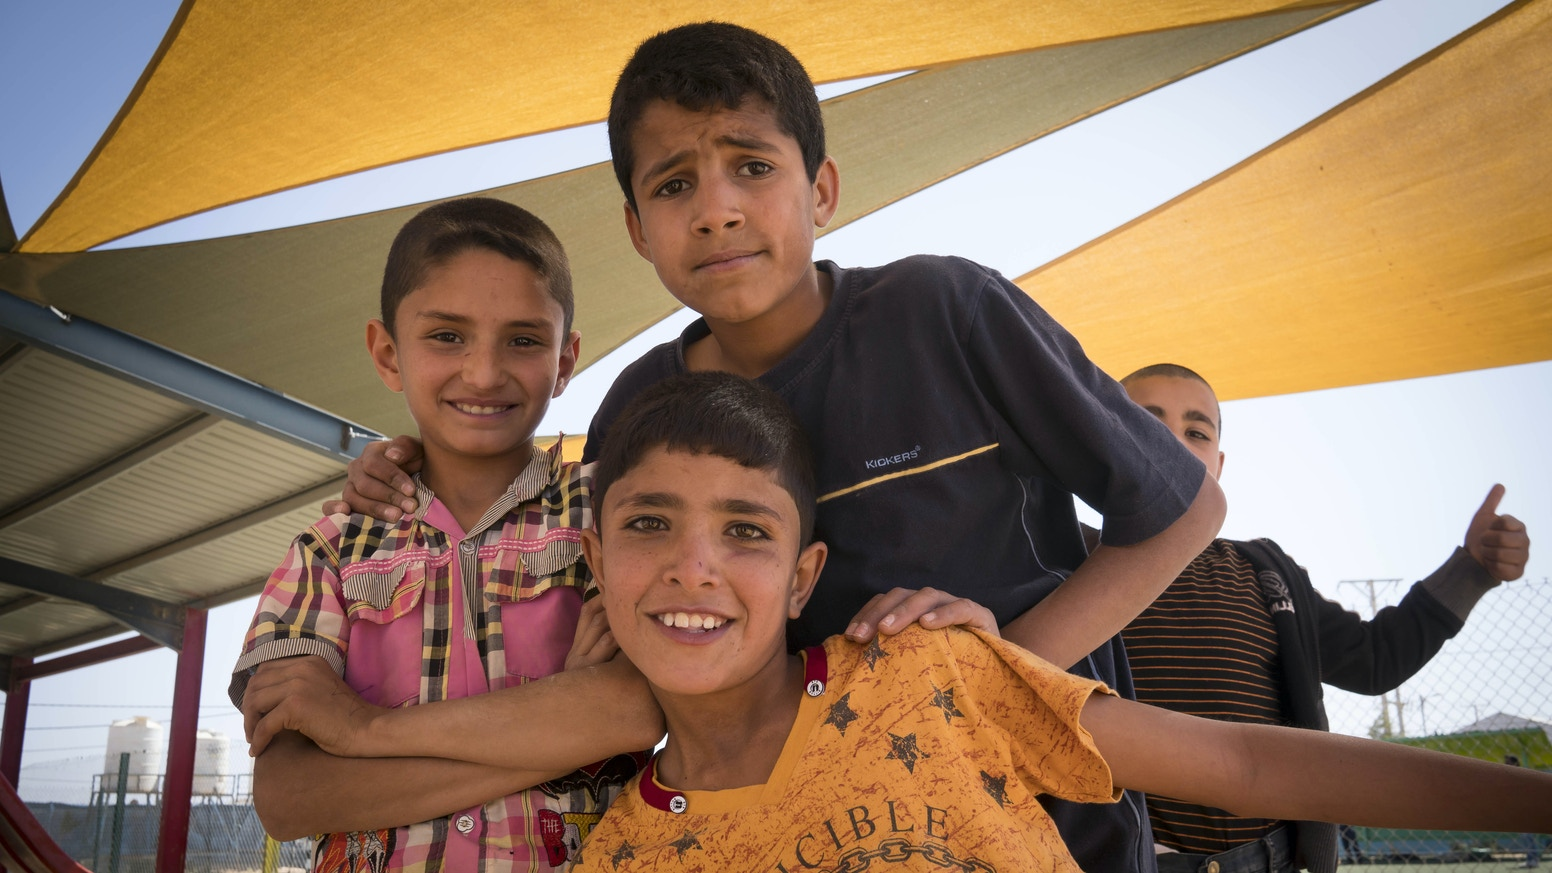 Scientists and humanitarians combine research and compassion to heal Syrian refugee families scarred by the devastating stress of war.